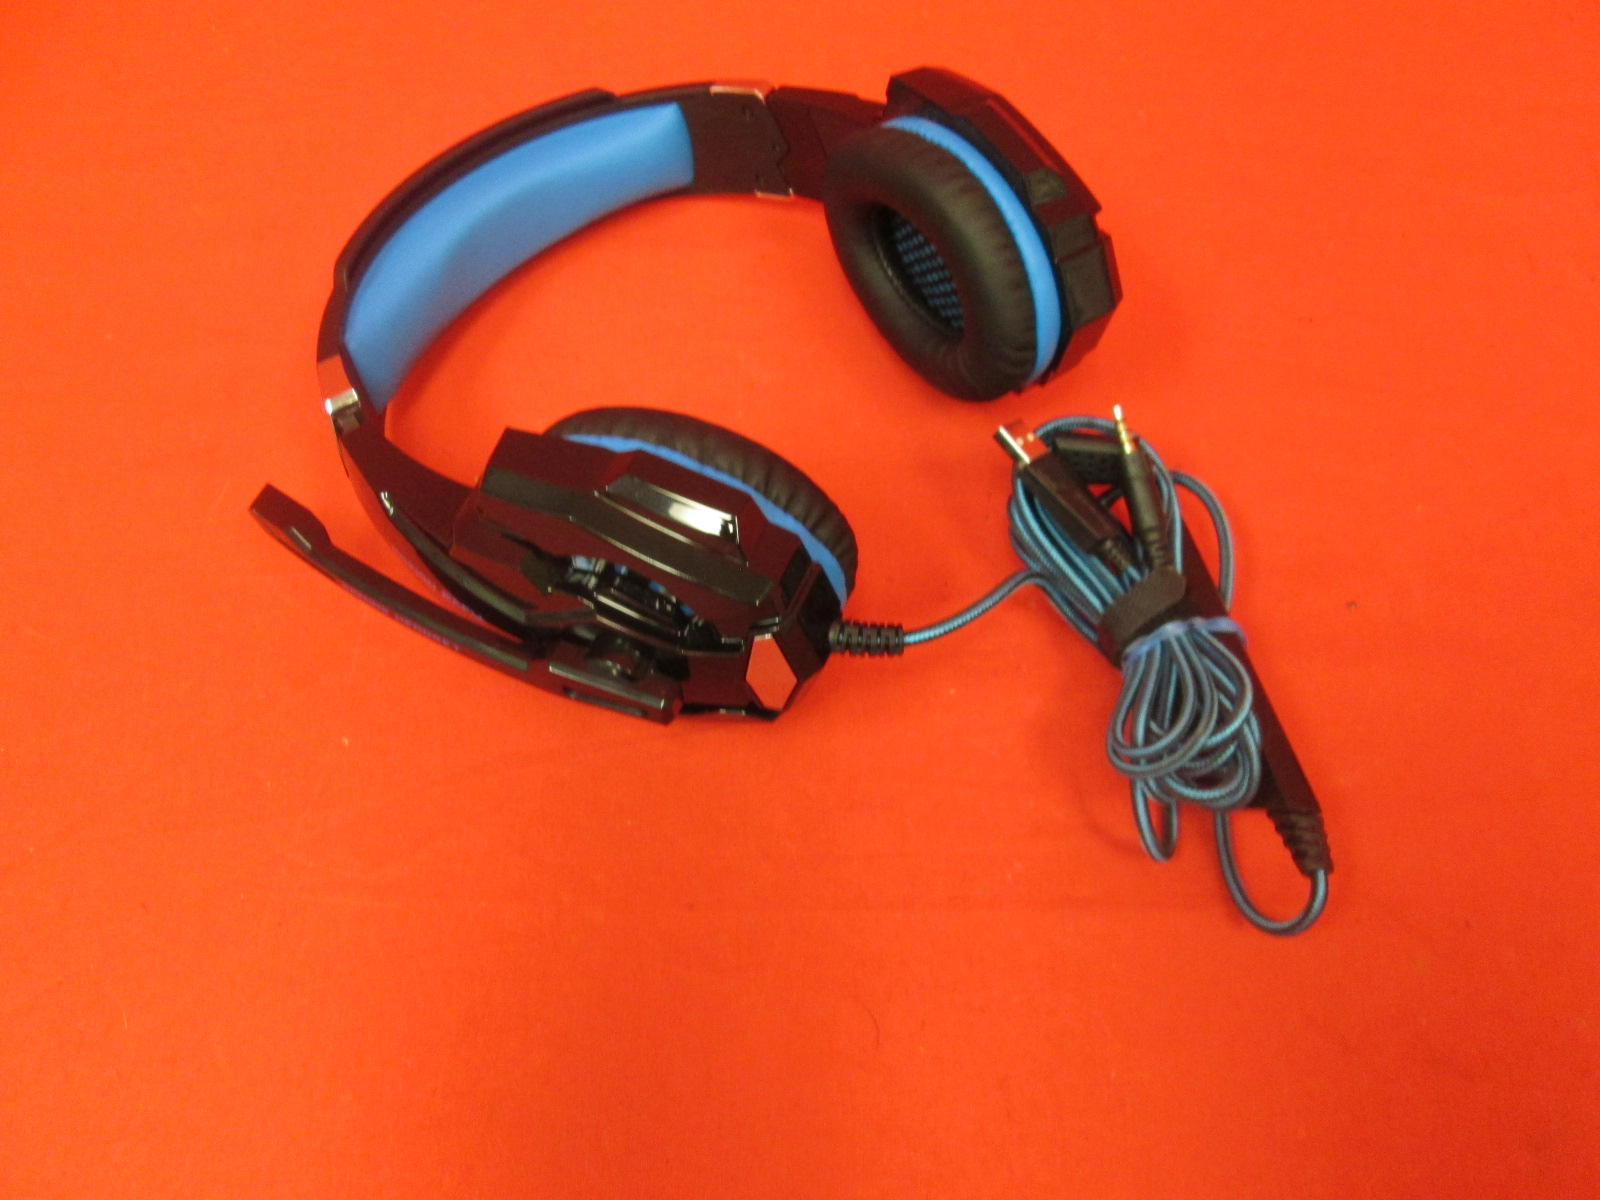 DIZA100 Kotion Each G9000 Gaming Headset 3.5MM Stereo Jack With Mic